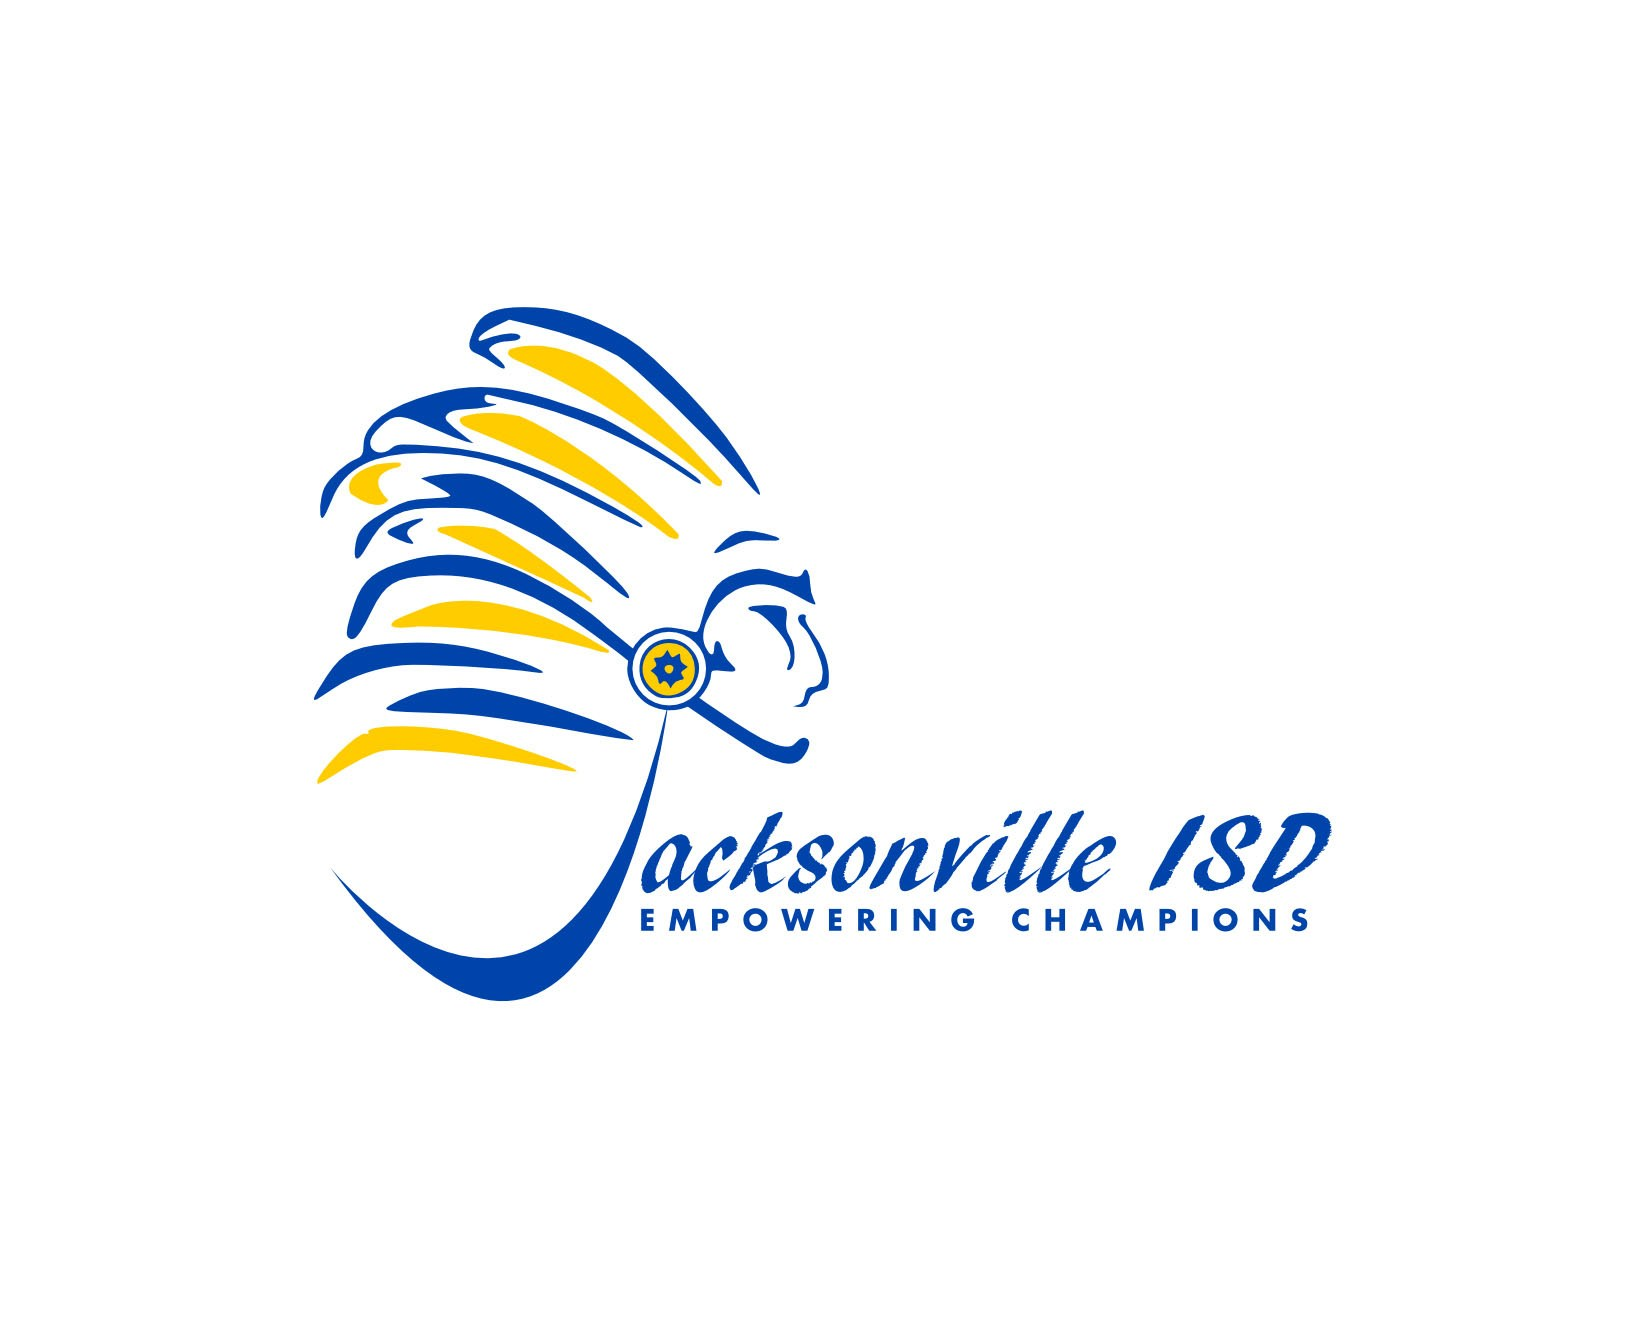 logo with jacksonville isd